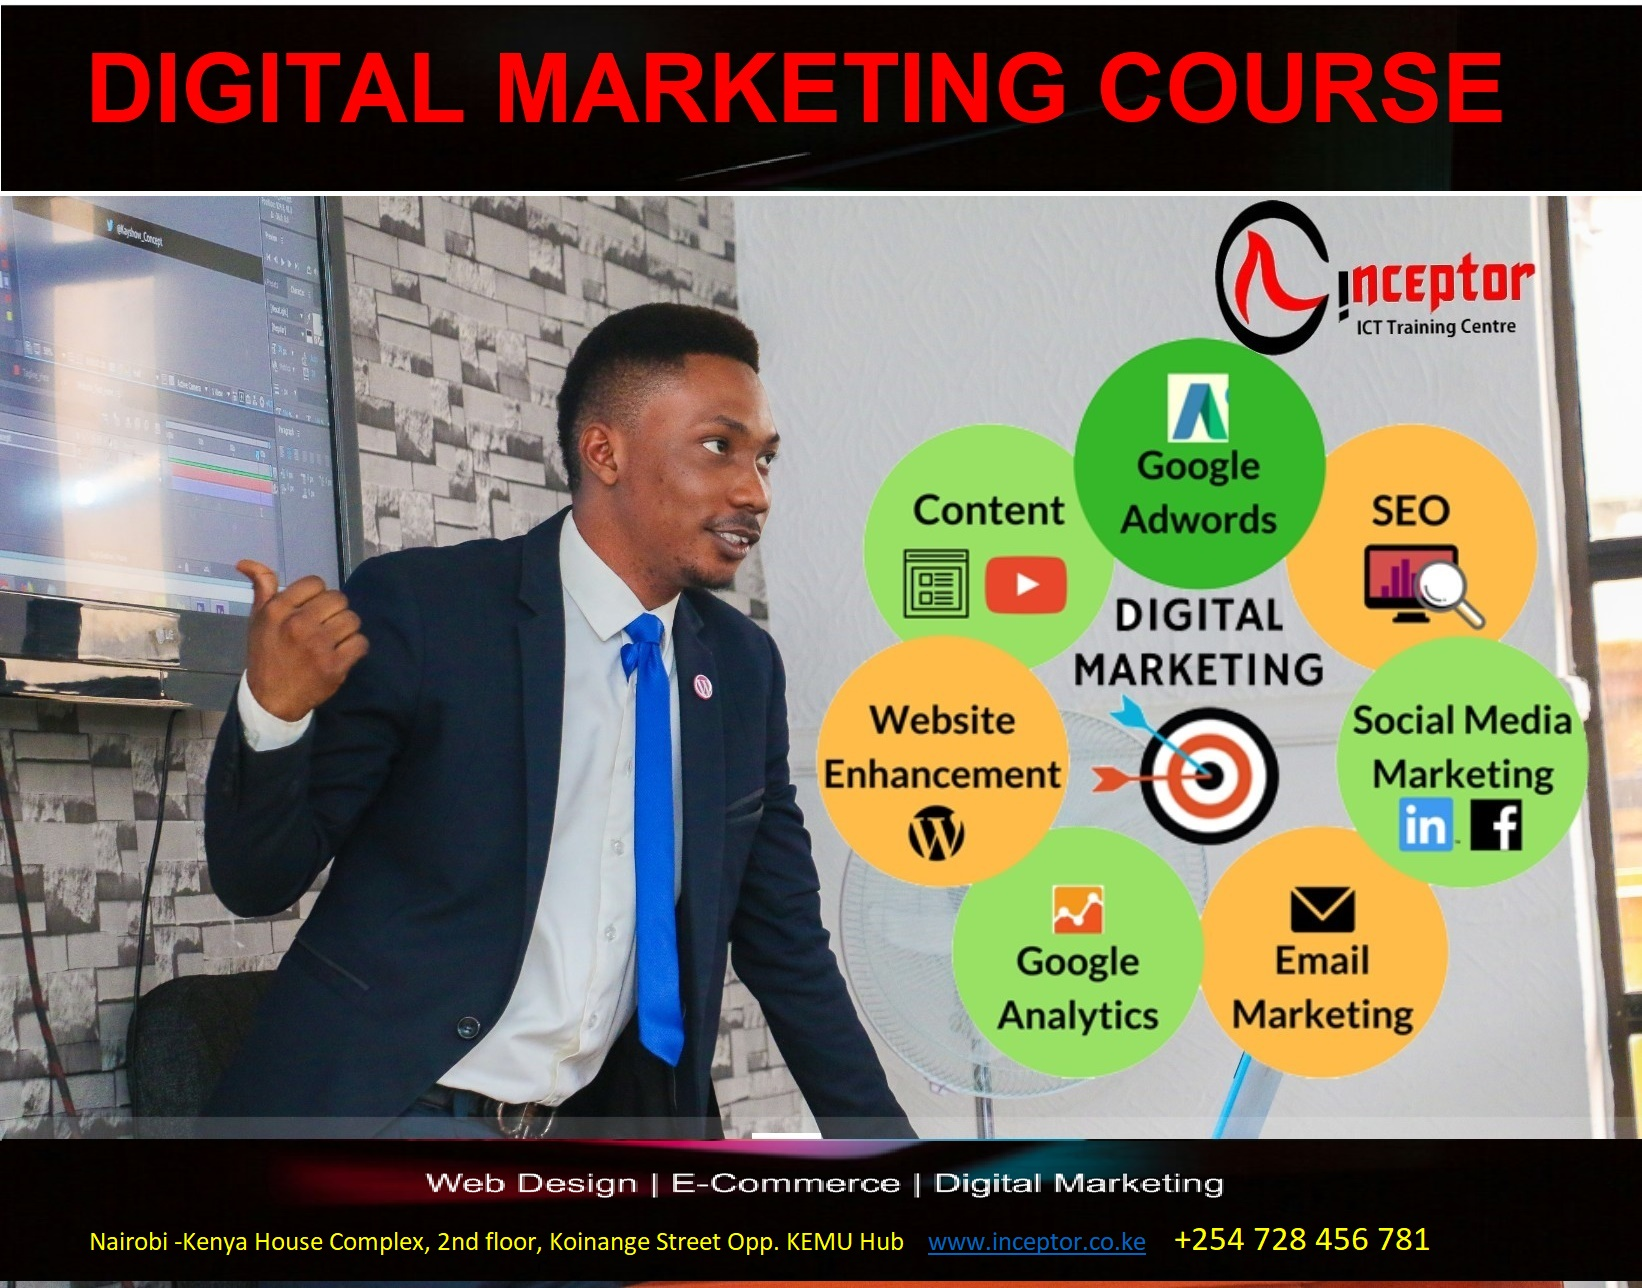 Rhyme's acquisition cost, andrew ng's deeplearning.ai revenue, no. Best Digital Marketing Course in Nairobi Kenya in 2021 ...